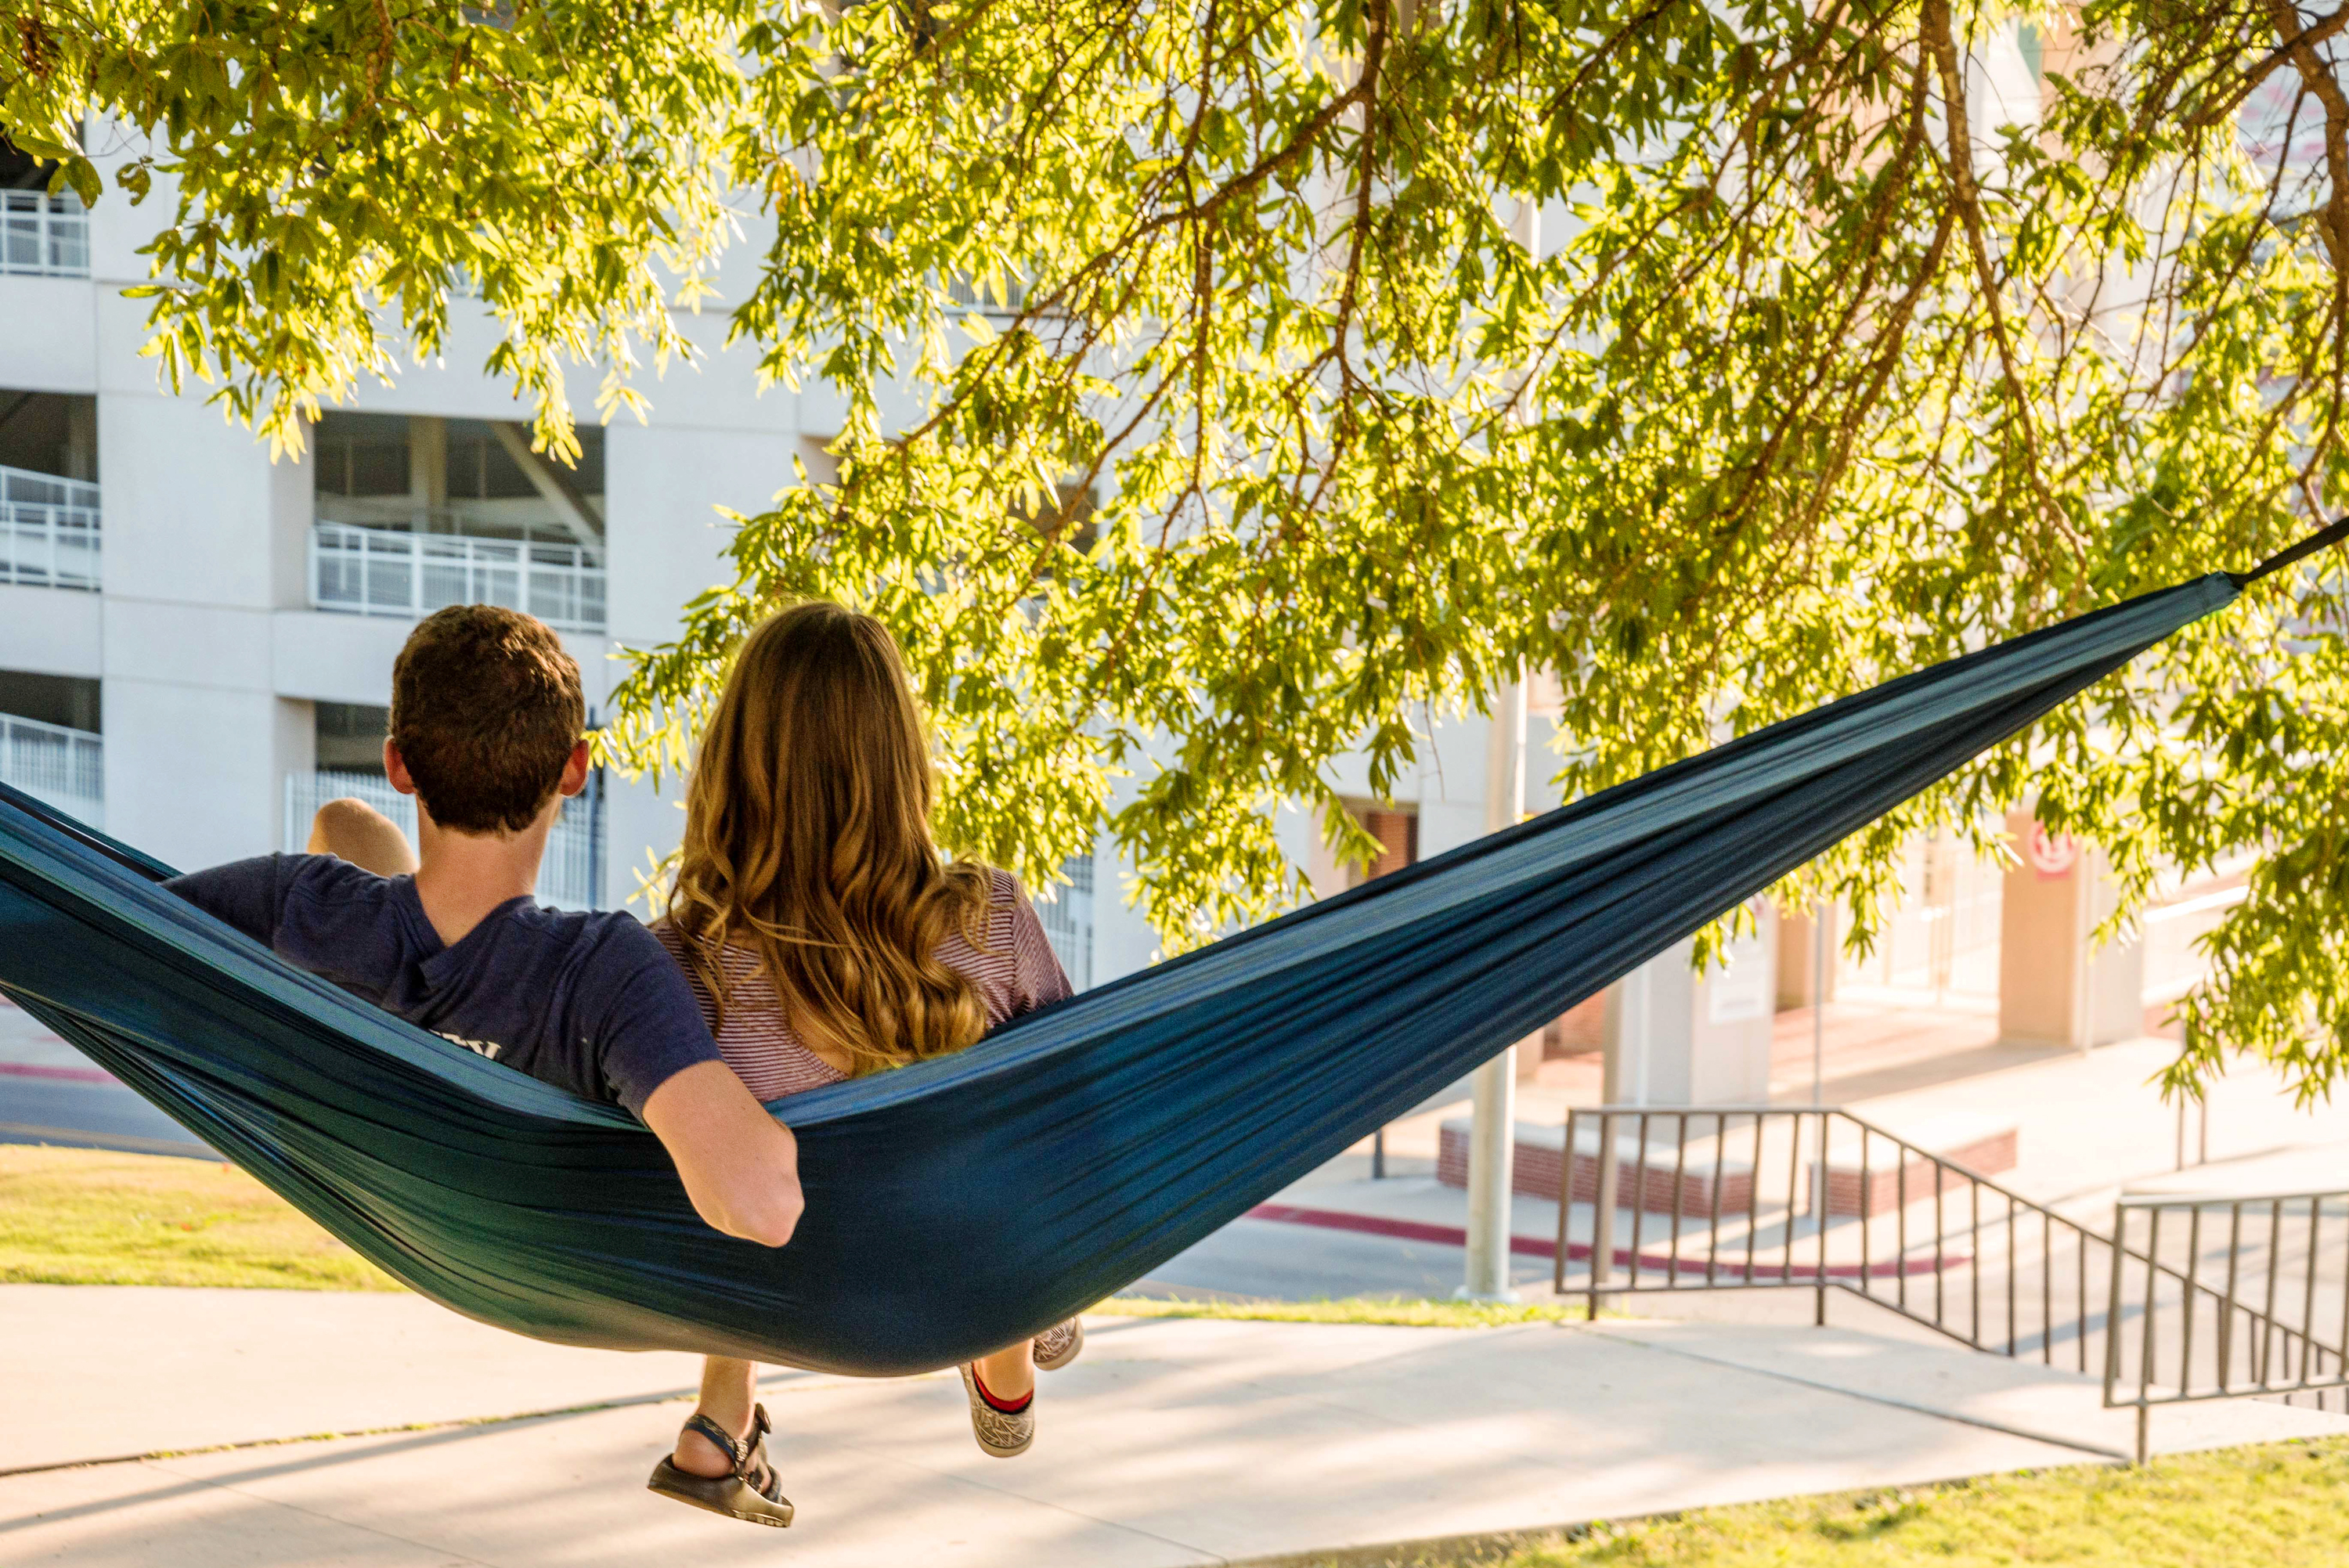 Hanging out and hammocking in the park - Colibri Camping Hammock